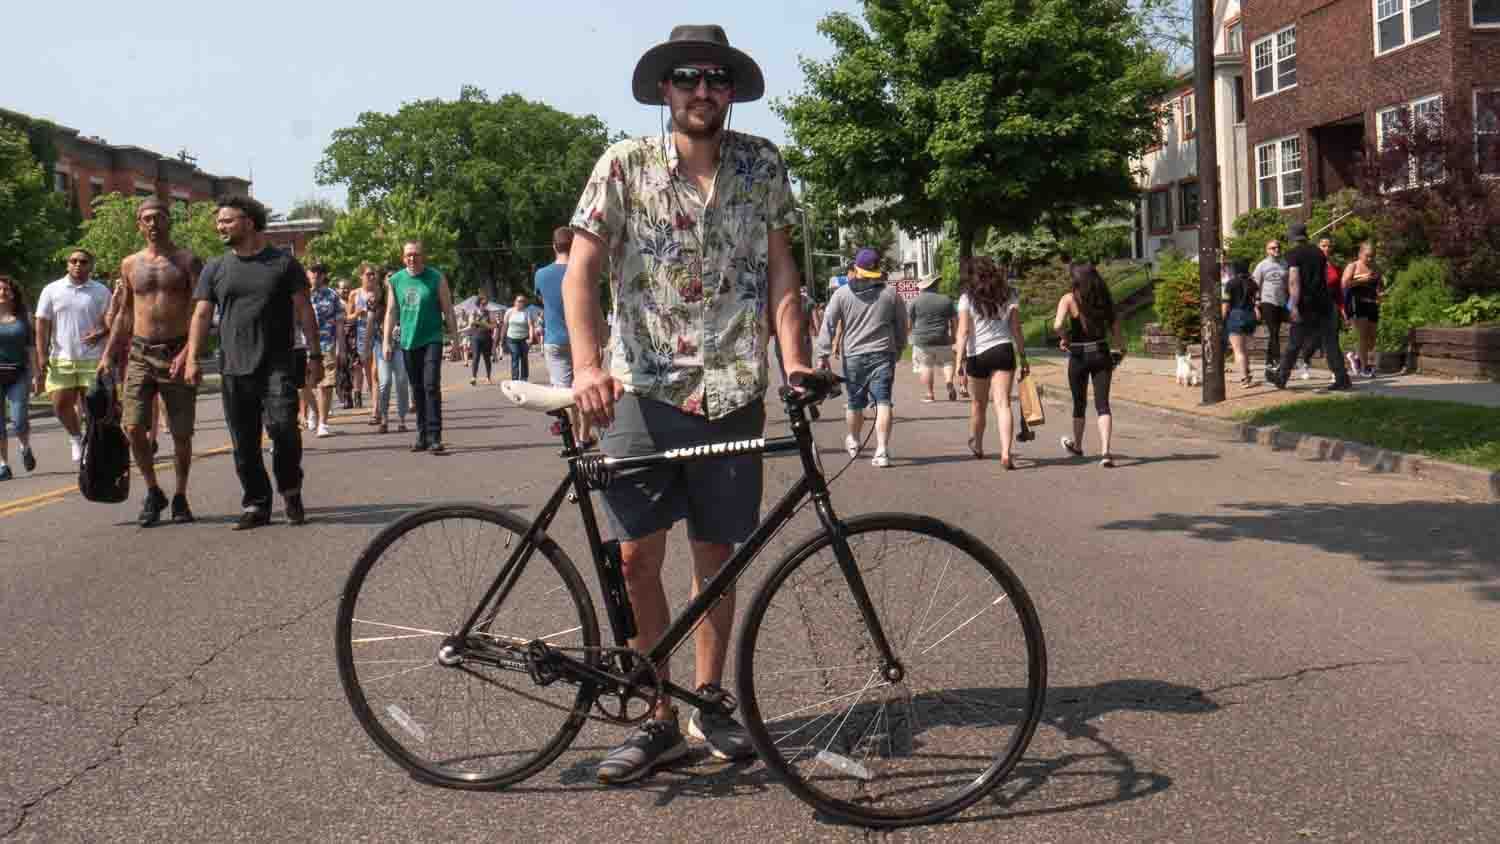 Man poses with his bicycle in Minnesota 2019